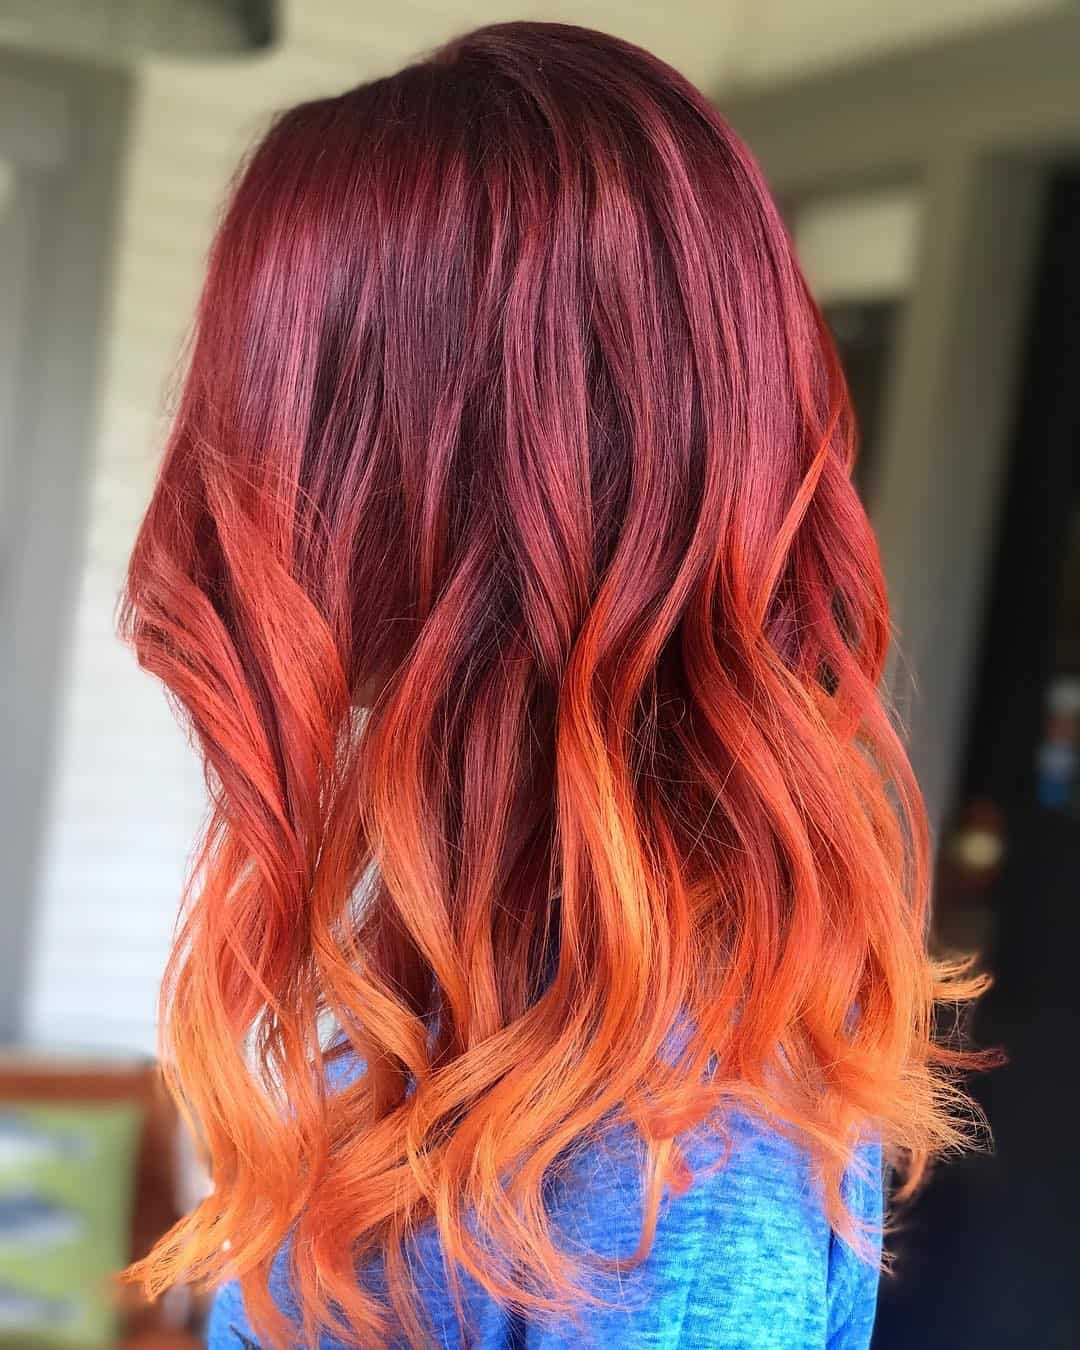 Styling-Hair-For-Your-Red-Ombre-Hair